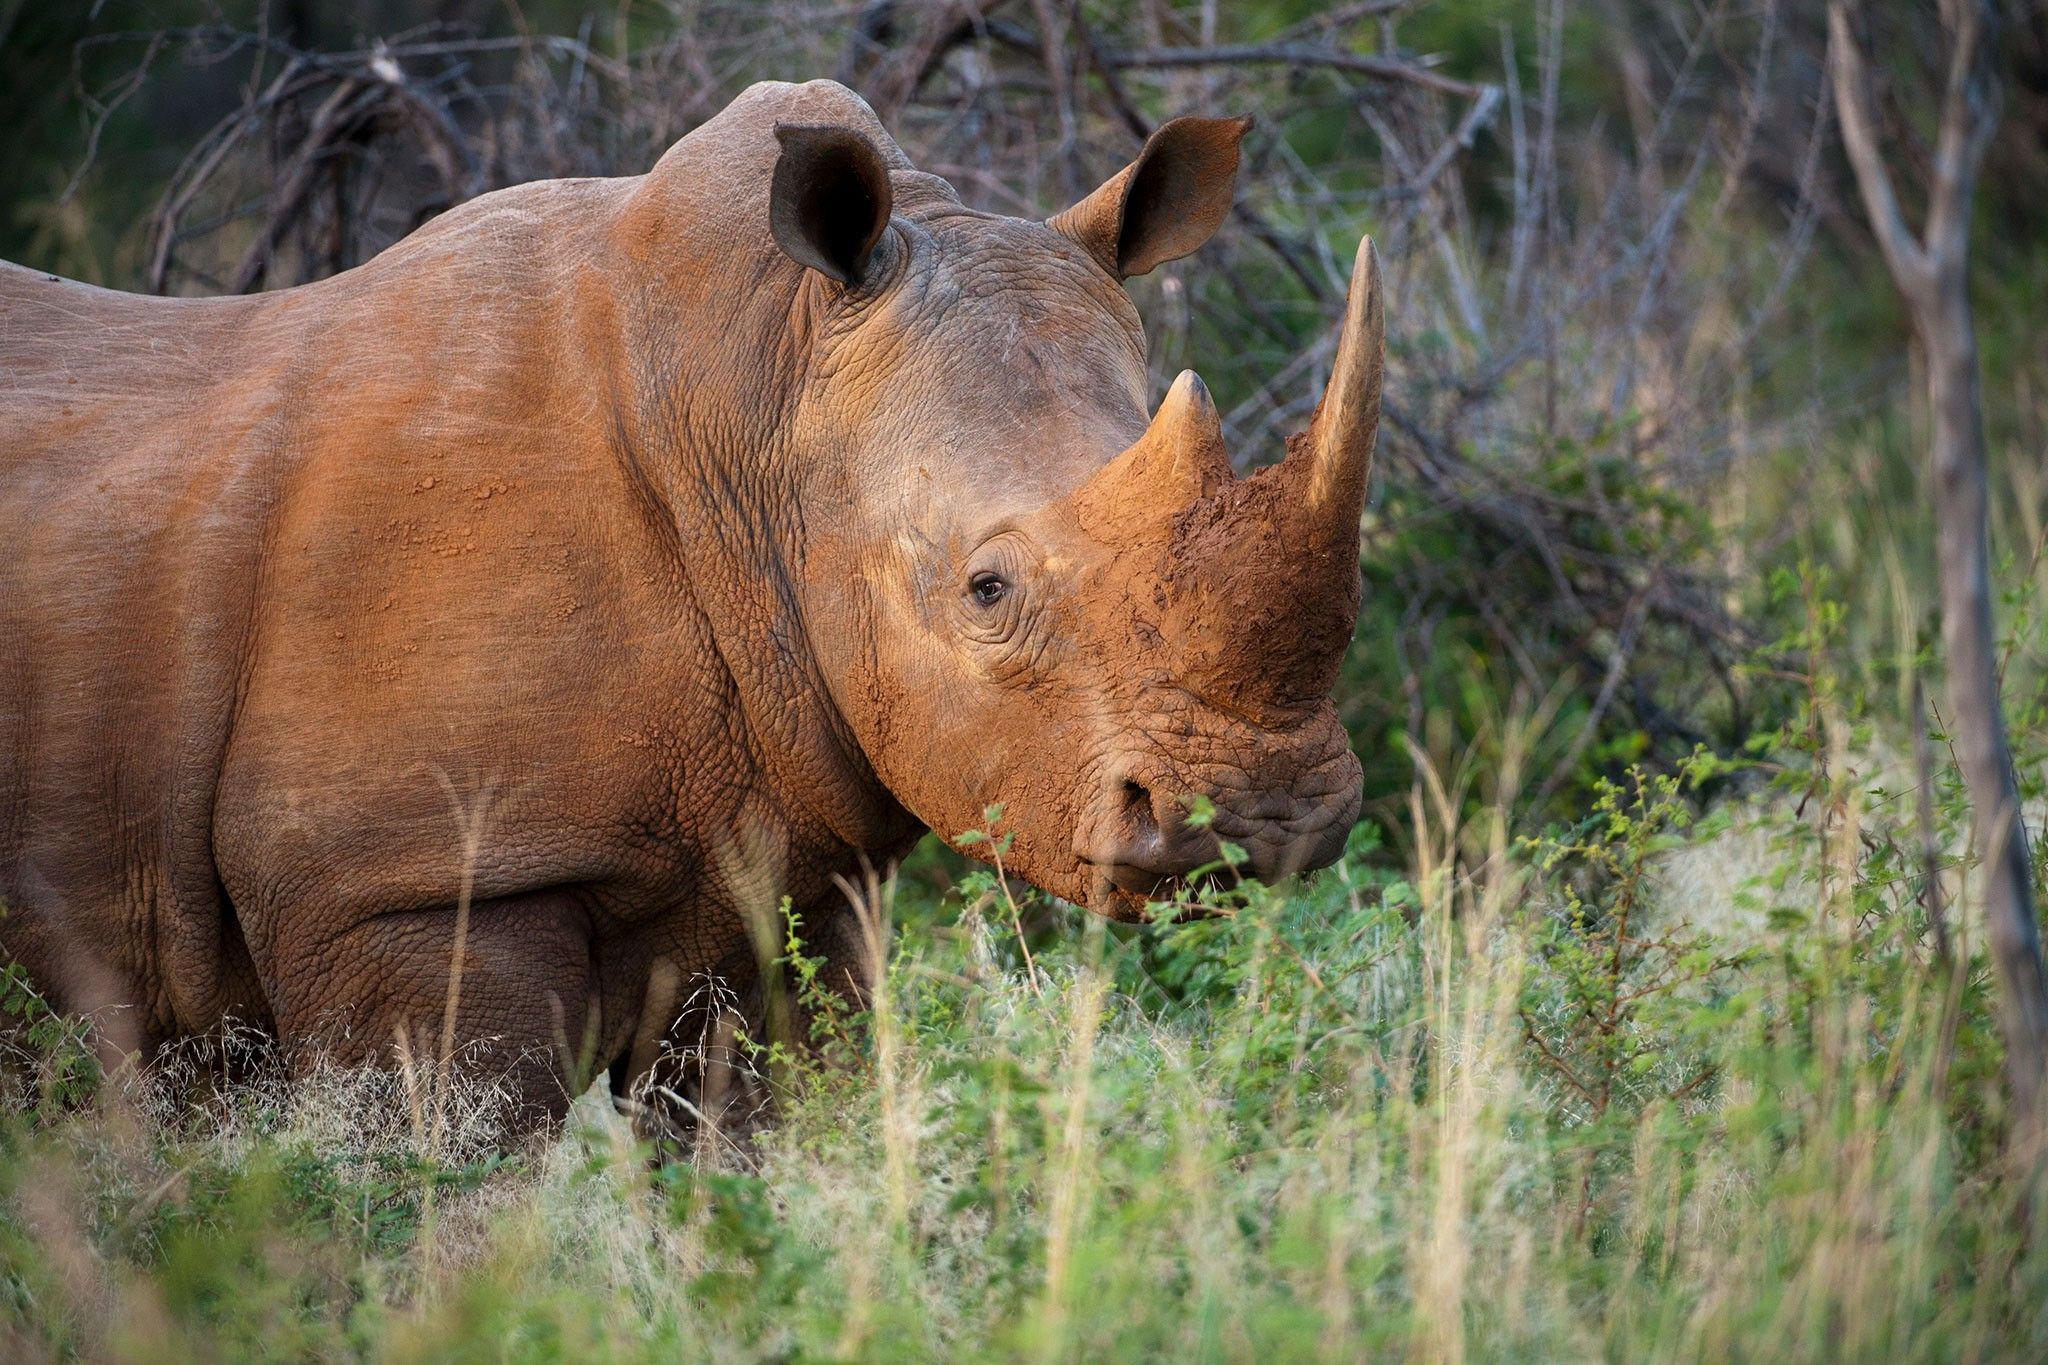 Countries reject proposal to open up rhino horn trade   National Geographic